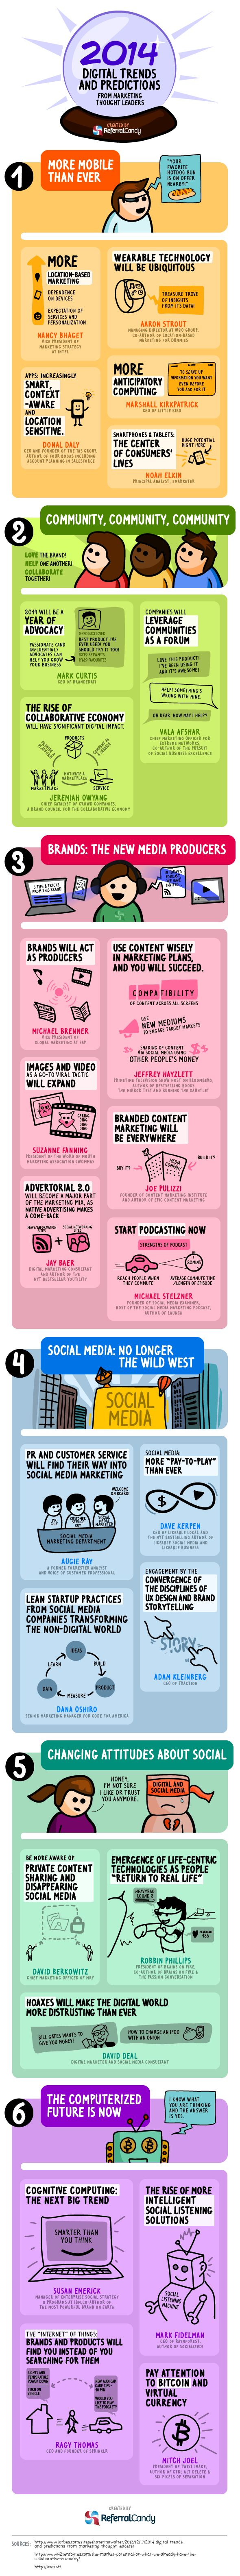 2014 Digital Marketing Trends And predictions From Marketing Thought Leaders infographic